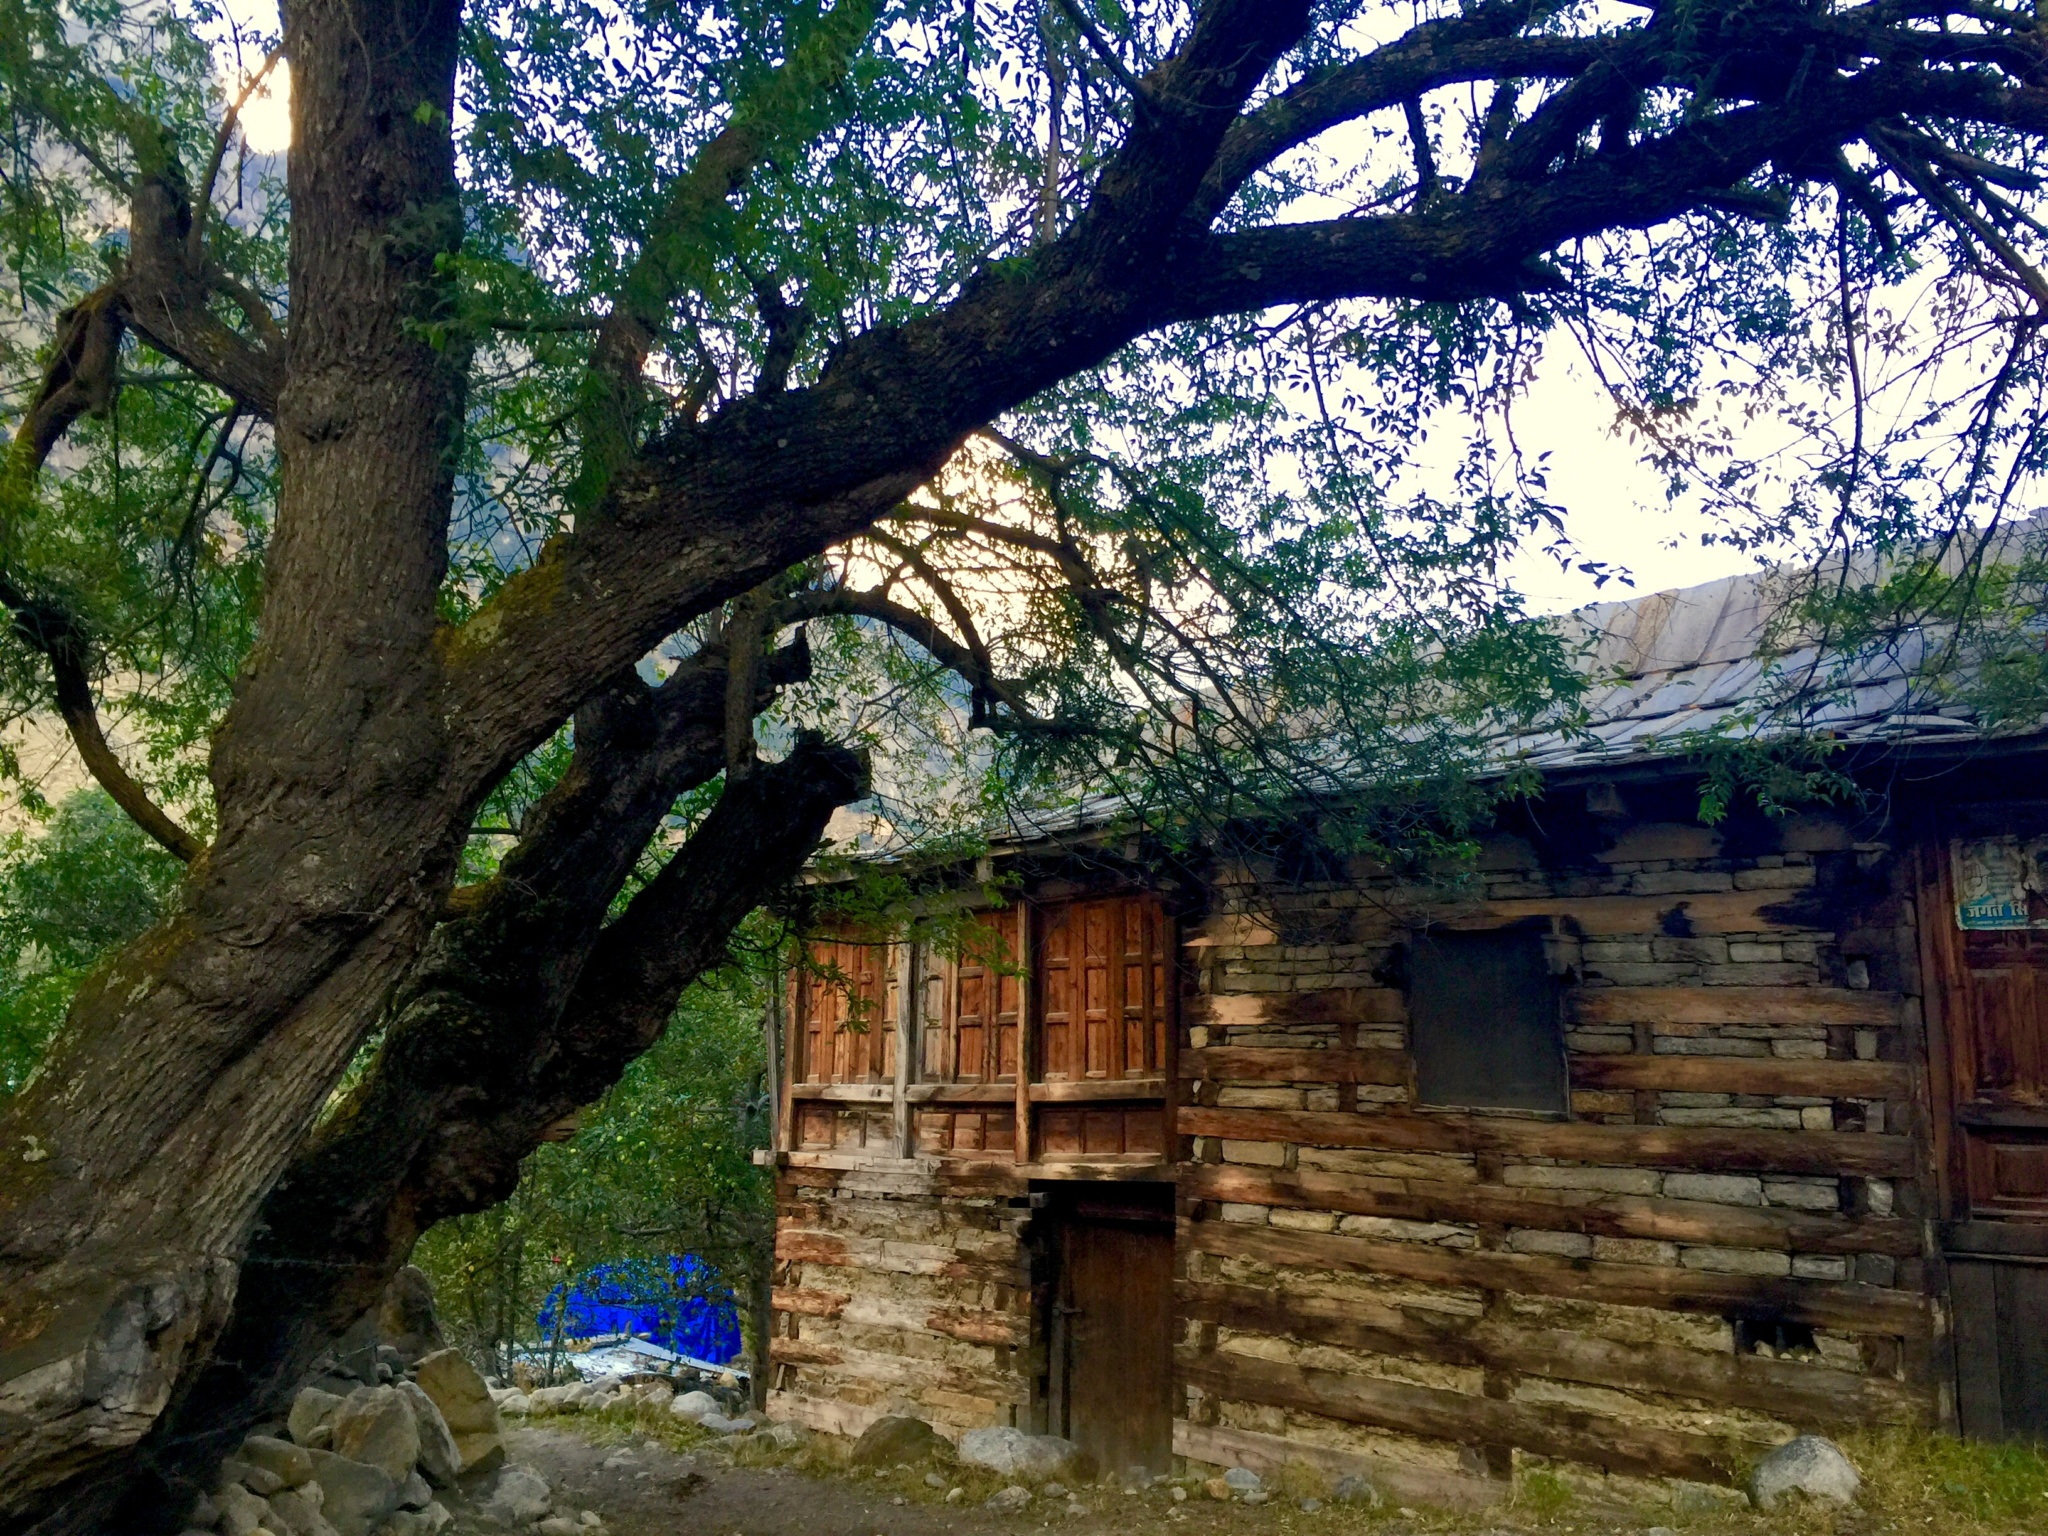 batseri-village-sangla-valley